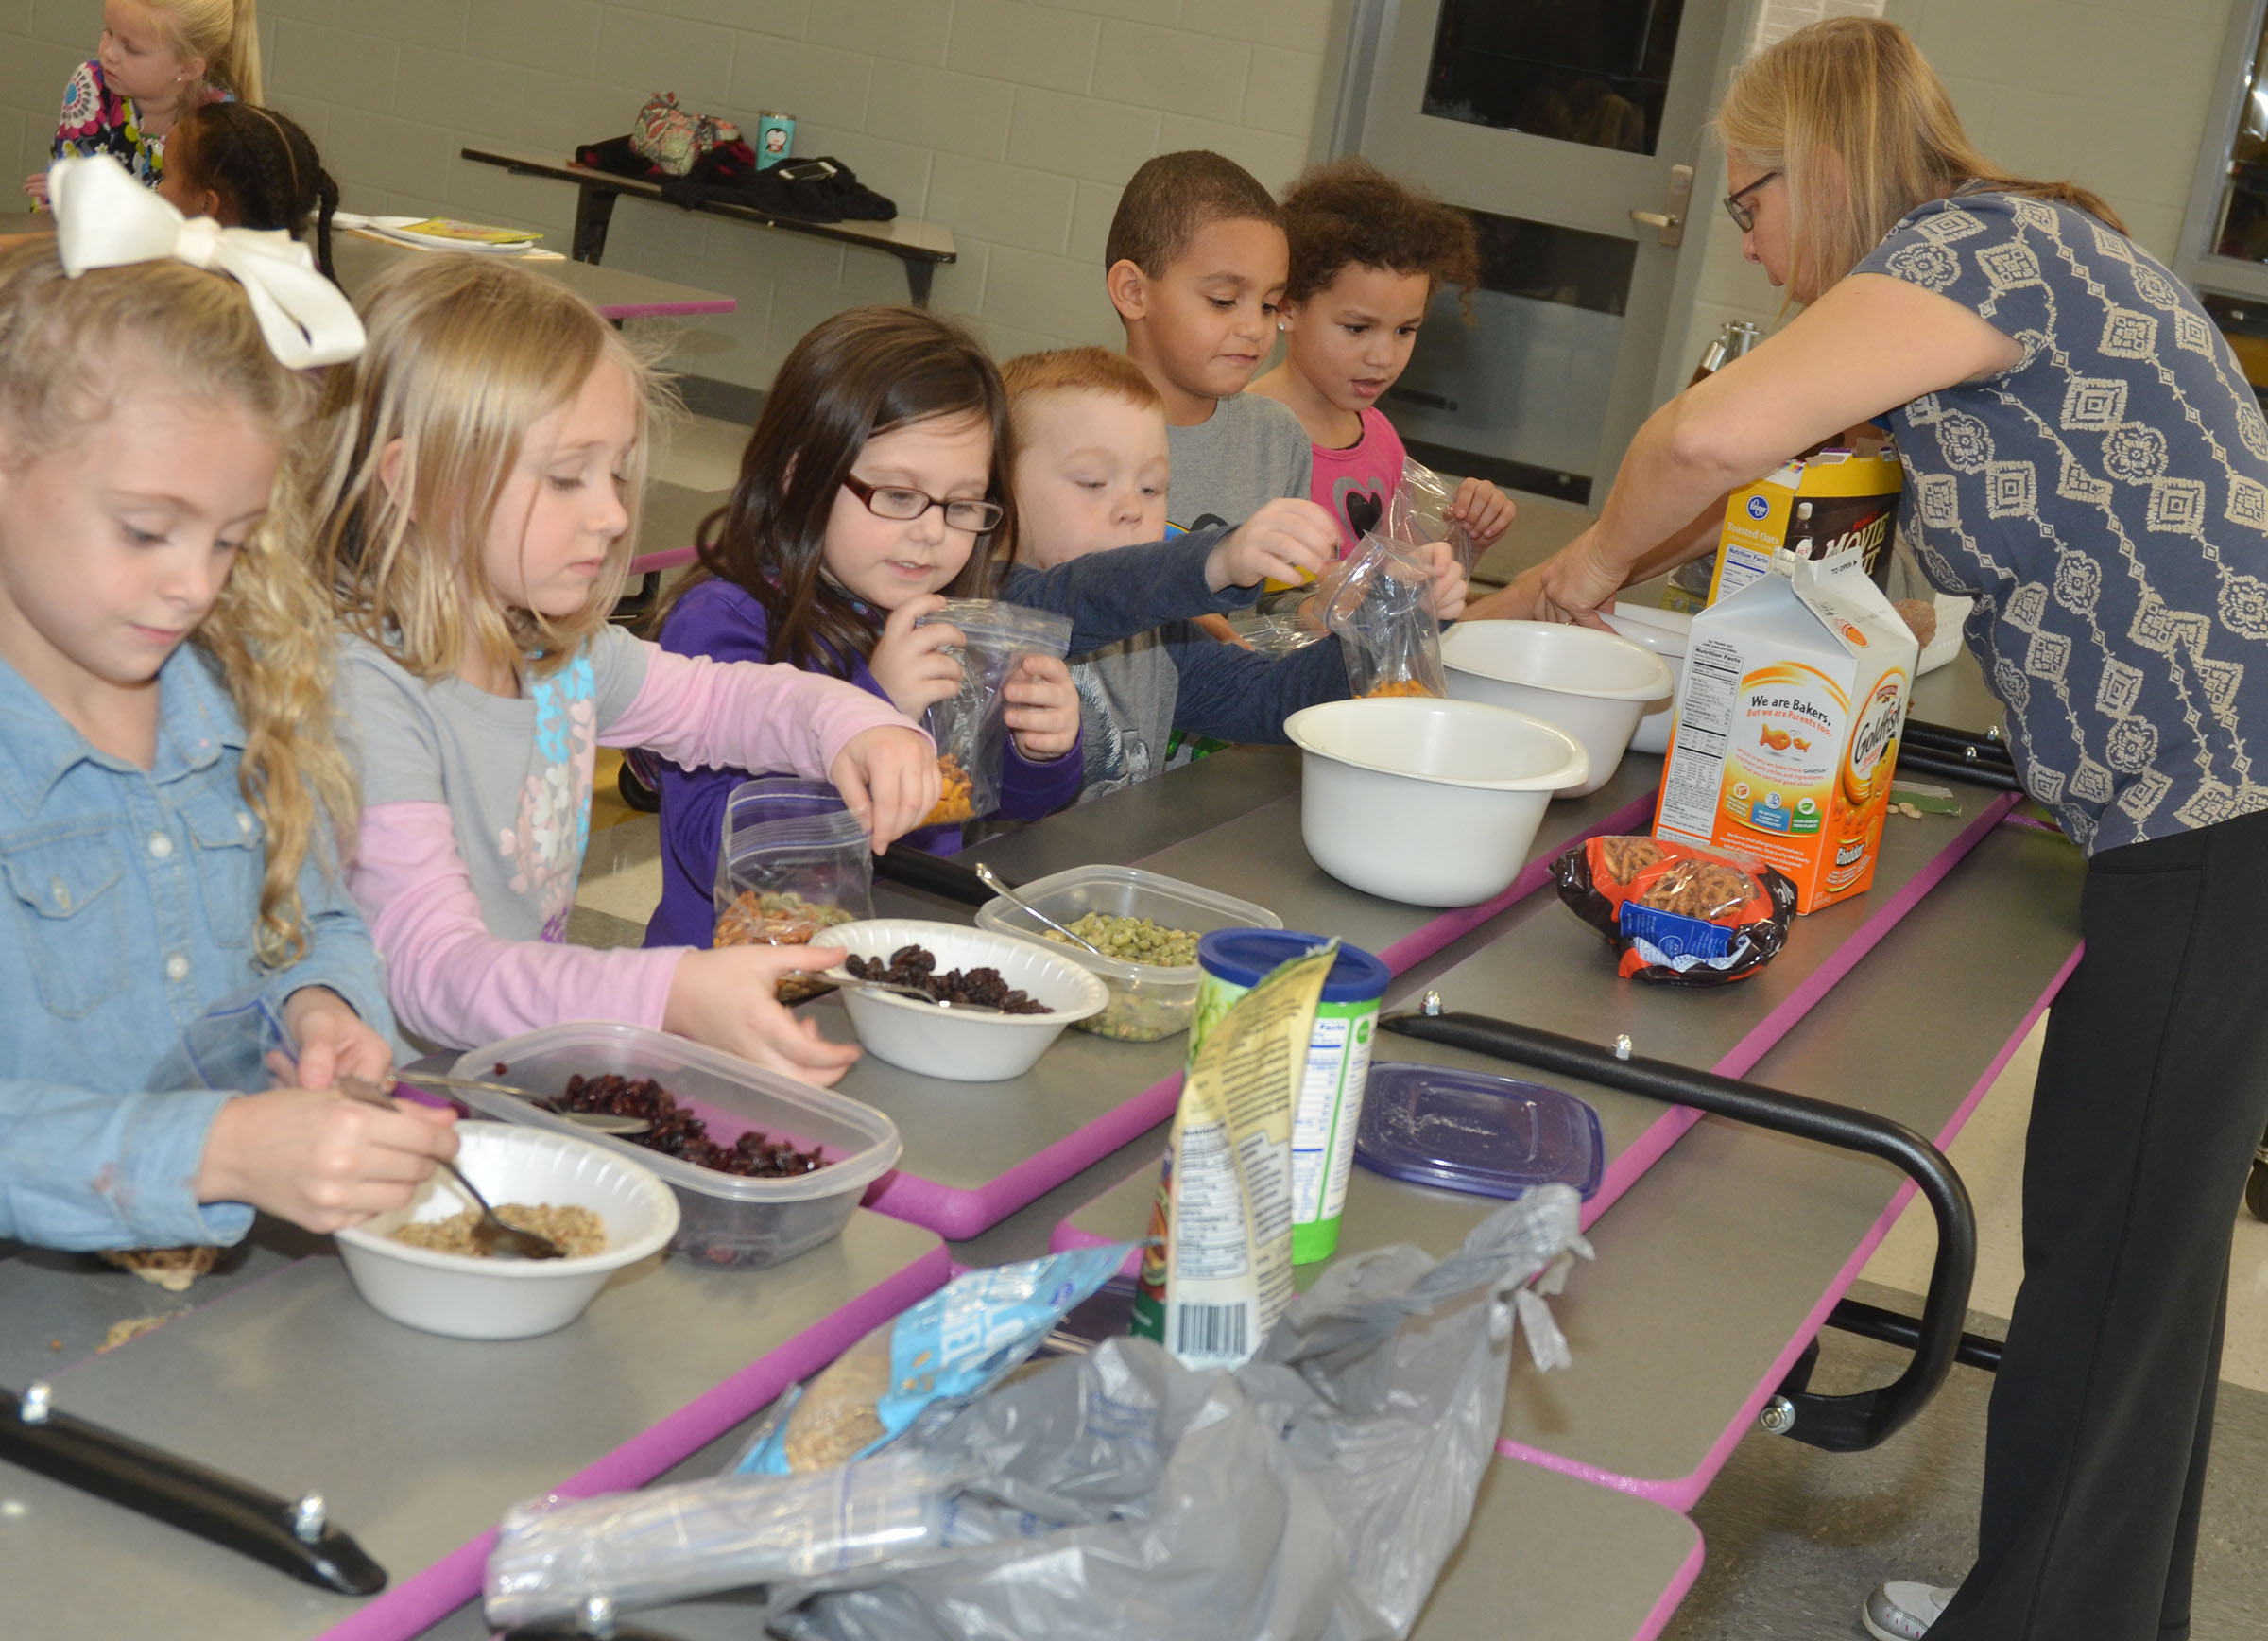 Angie Freeman, expanded foods and nutrition program assistant at Taylor County Extension Office, helps CES kindergarteners make trail mix. From left are Aliyah Litsey, LeeAnna Garvin, Trinity Clark, Daven Davis, Quincy Travis and Aleeya Spaulding.